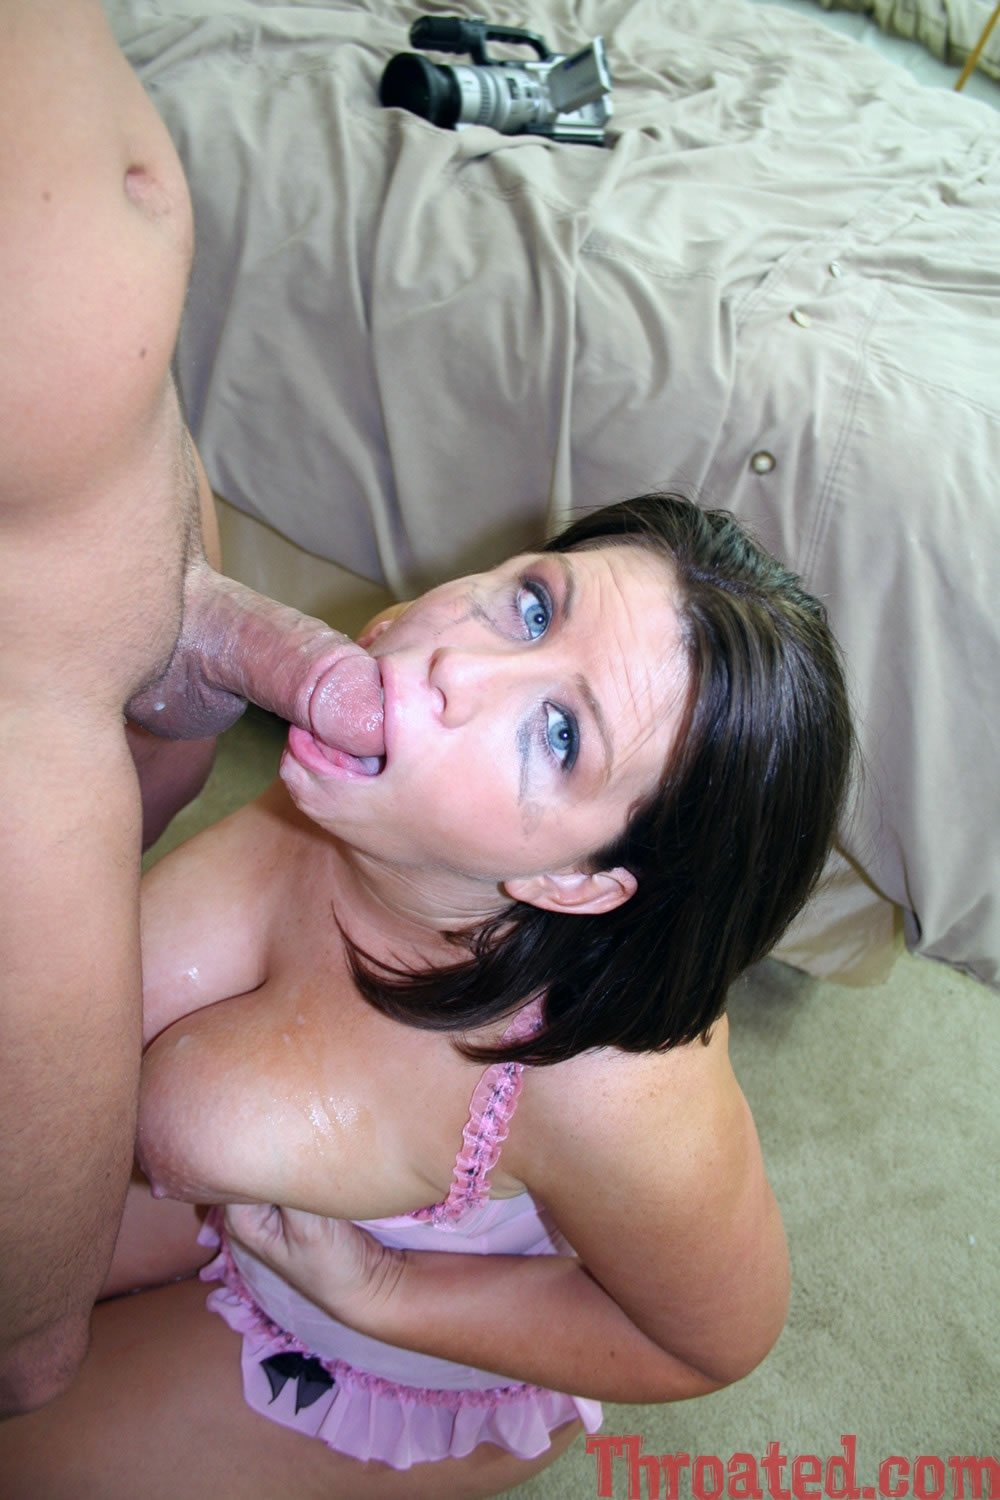 Cheating wife talking dirty #1